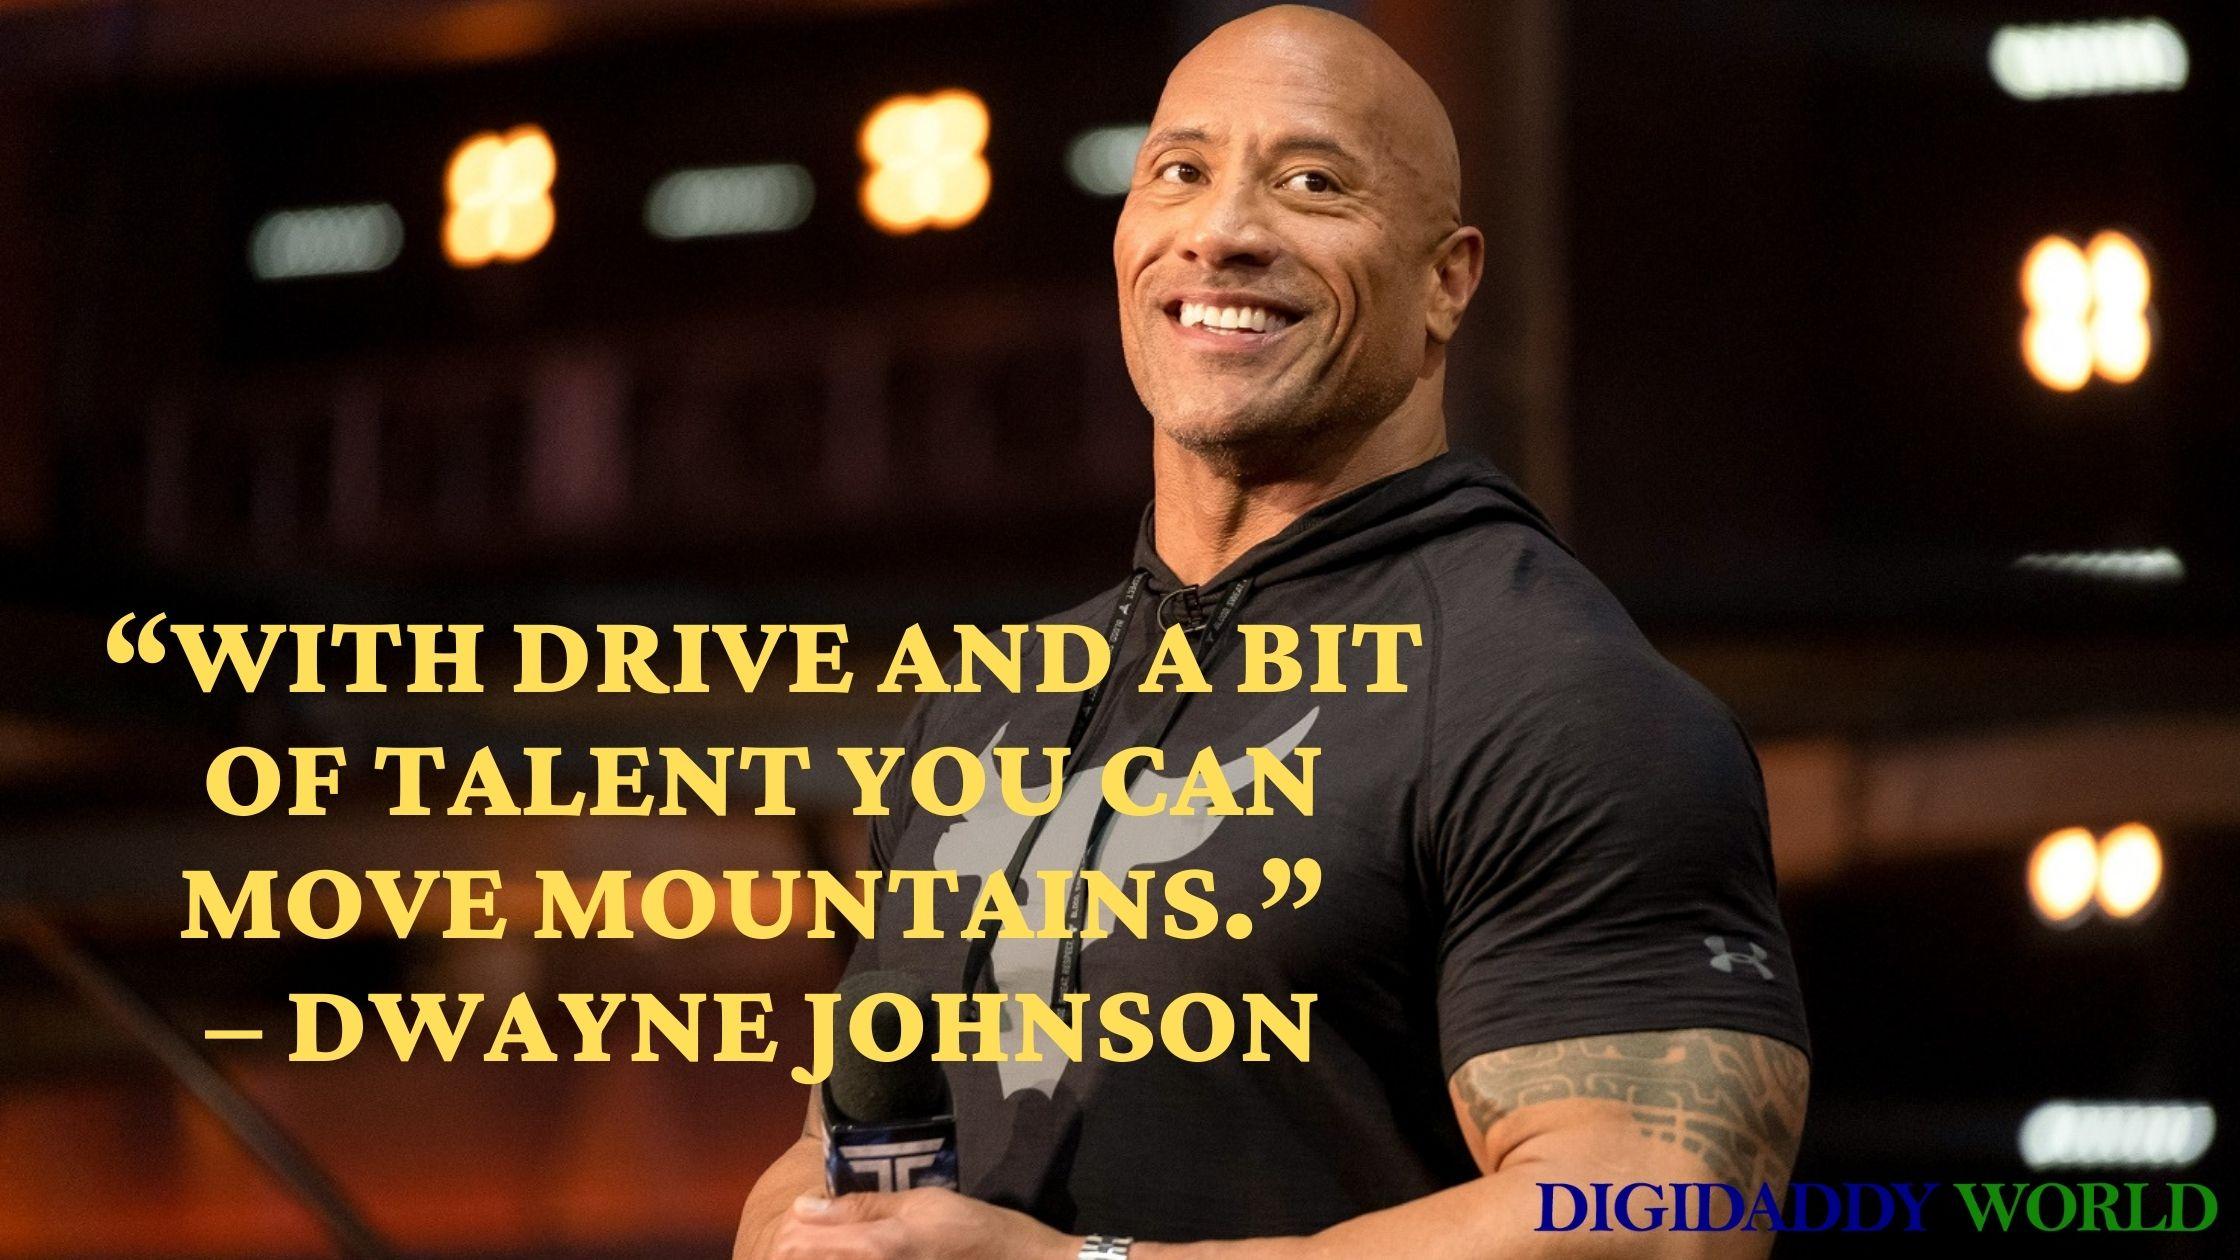 Dwayne Johnson - The Rock Quotes About Life